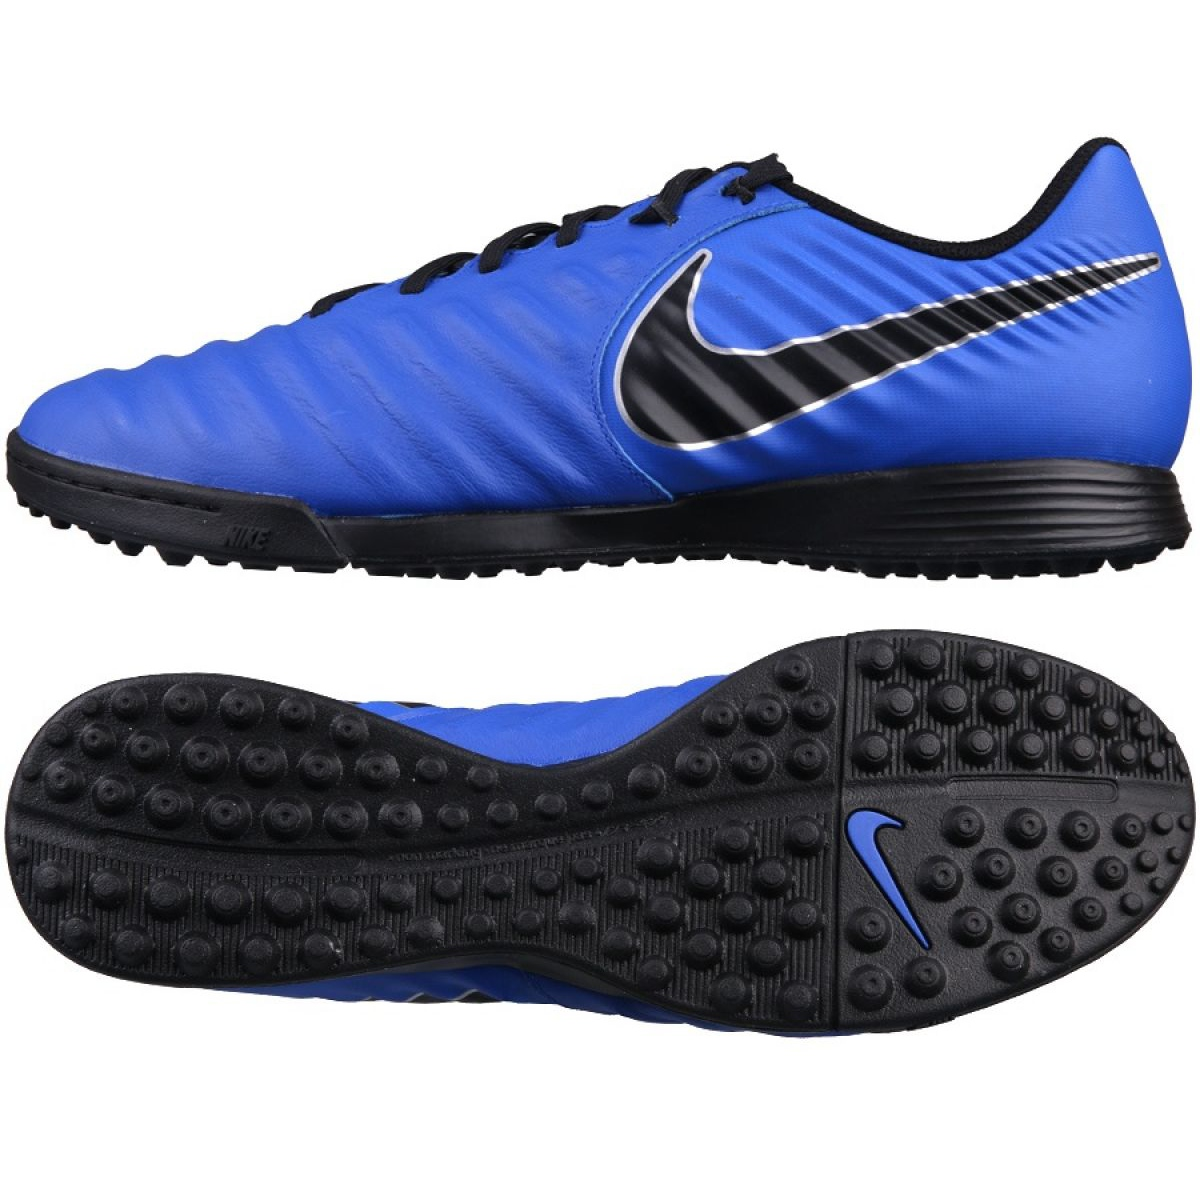 info for cc7ef 88893 Football shoes Nike Tiempo LegendX 7 Academy Tf M AH7243-400